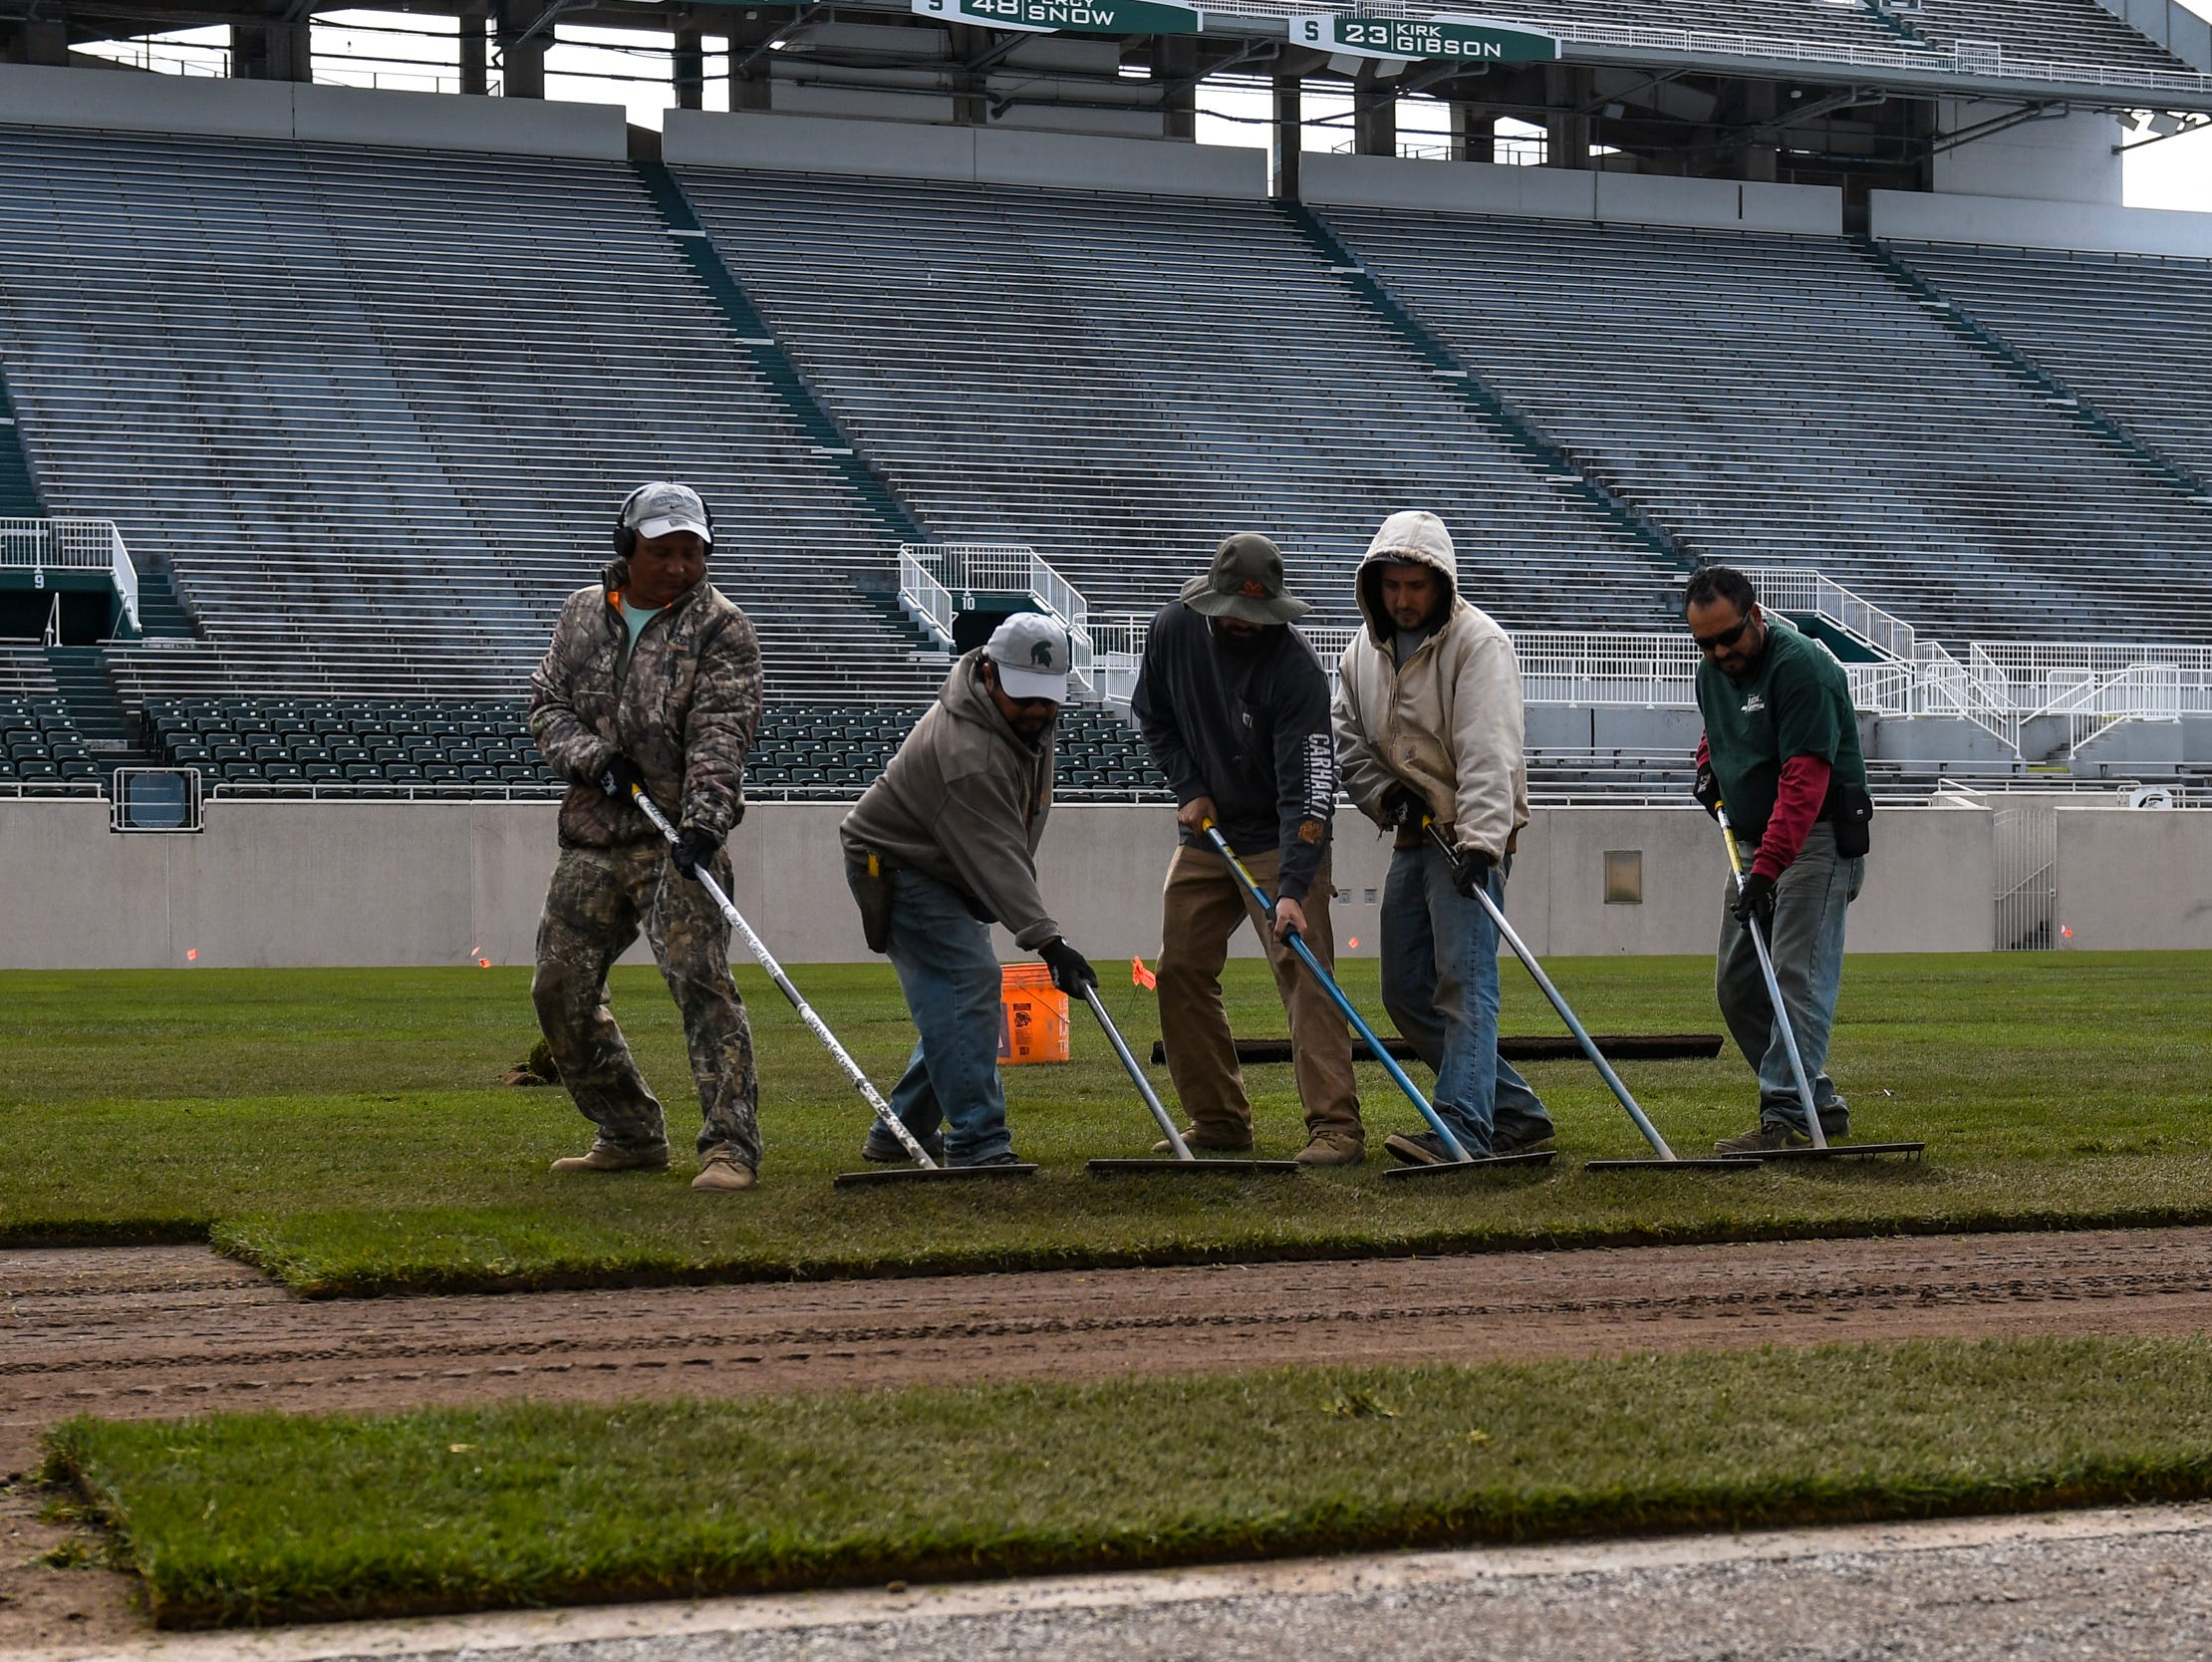 A crew of workers installed this week new Kentucky bluegrass sod on the football field at Michigan State's Spartan Stadium in East Lansing. About 375 rolls of new bluegrass will cover nearly 70,000 square feet of stadium's playing surface.